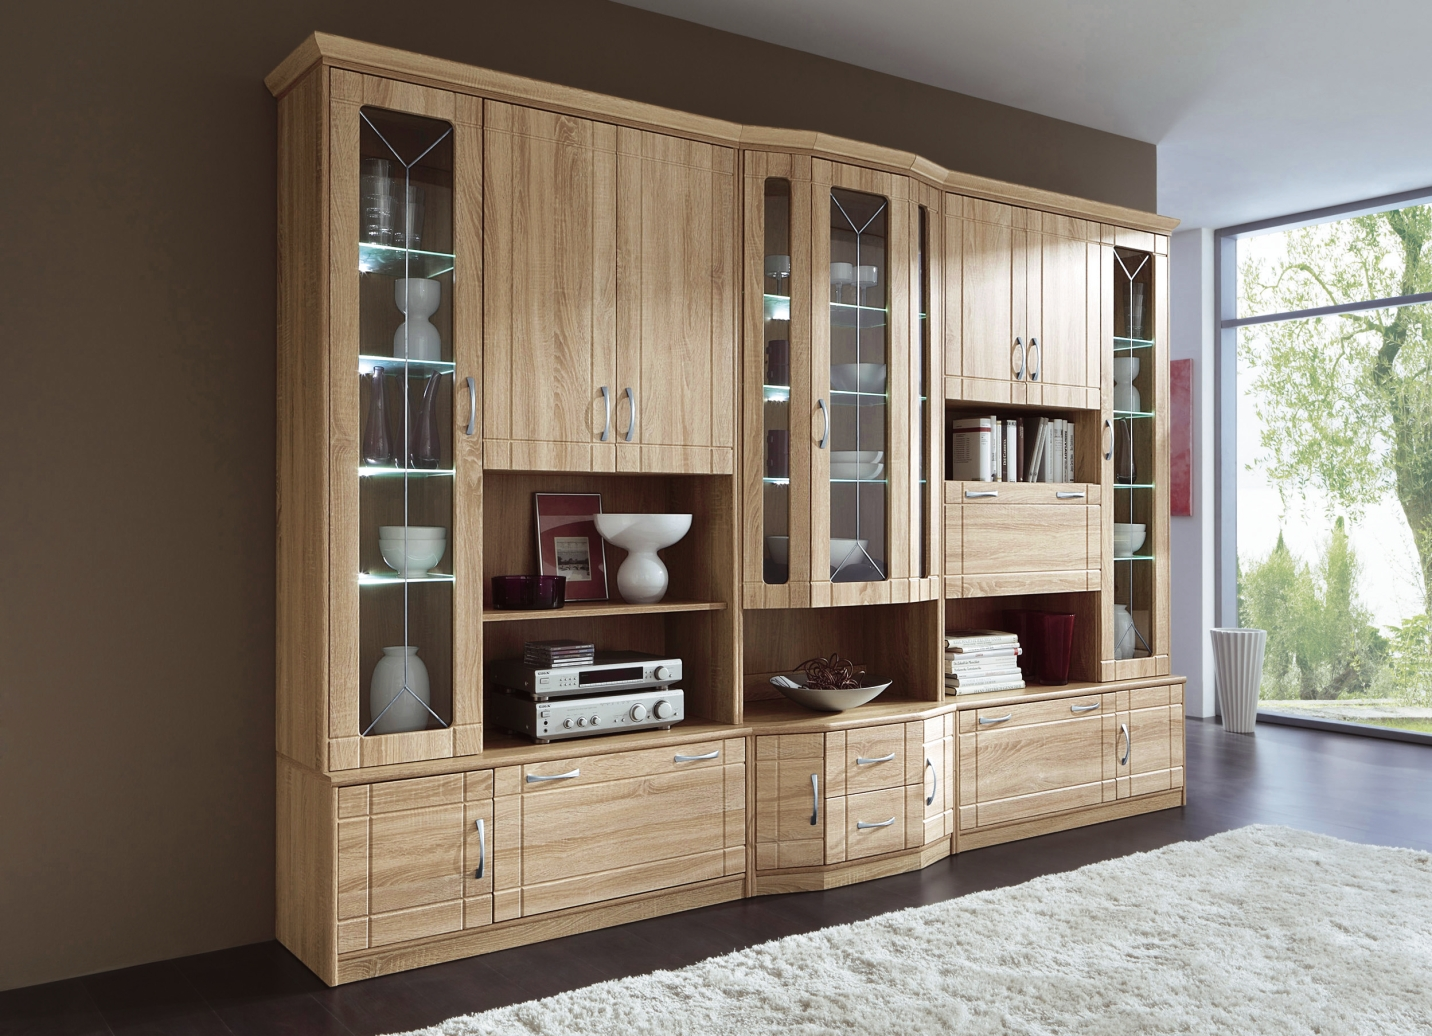 73 wohnzimmerschrank klassisch landhaus. Black Bedroom Furniture Sets. Home Design Ideas